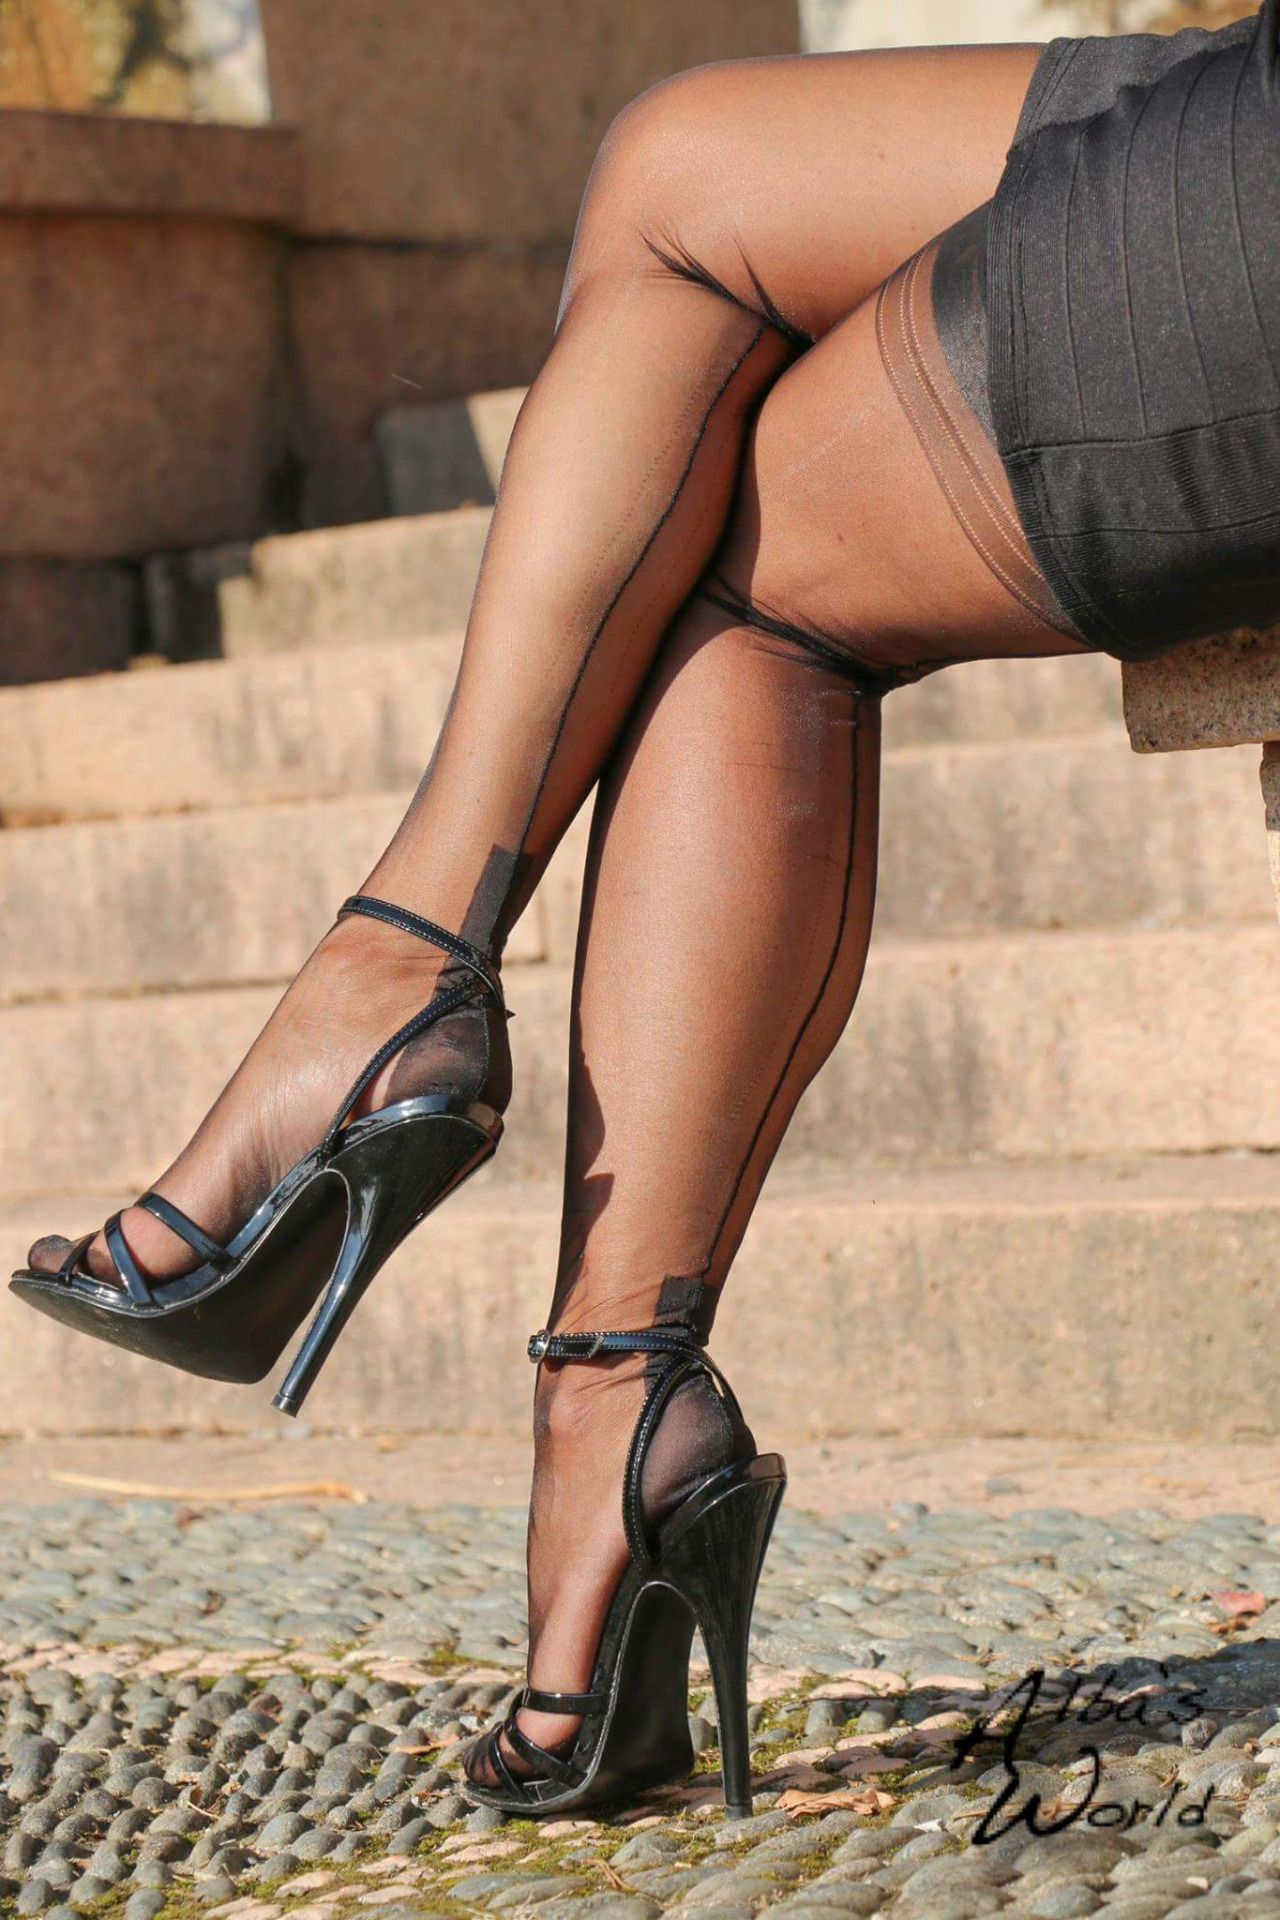 High Heels And Stockings Pics